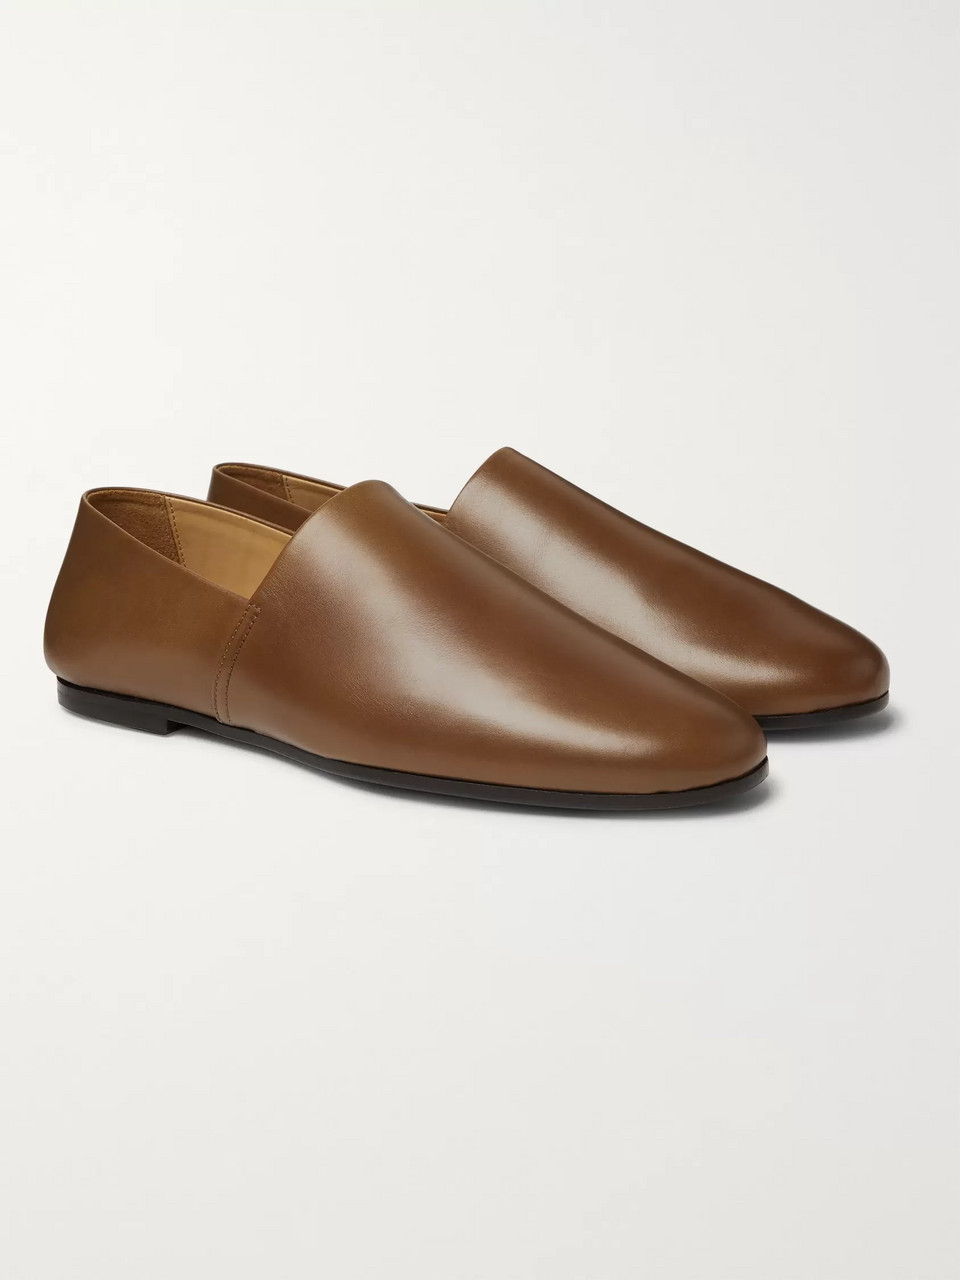 Sandro Leather Loafers